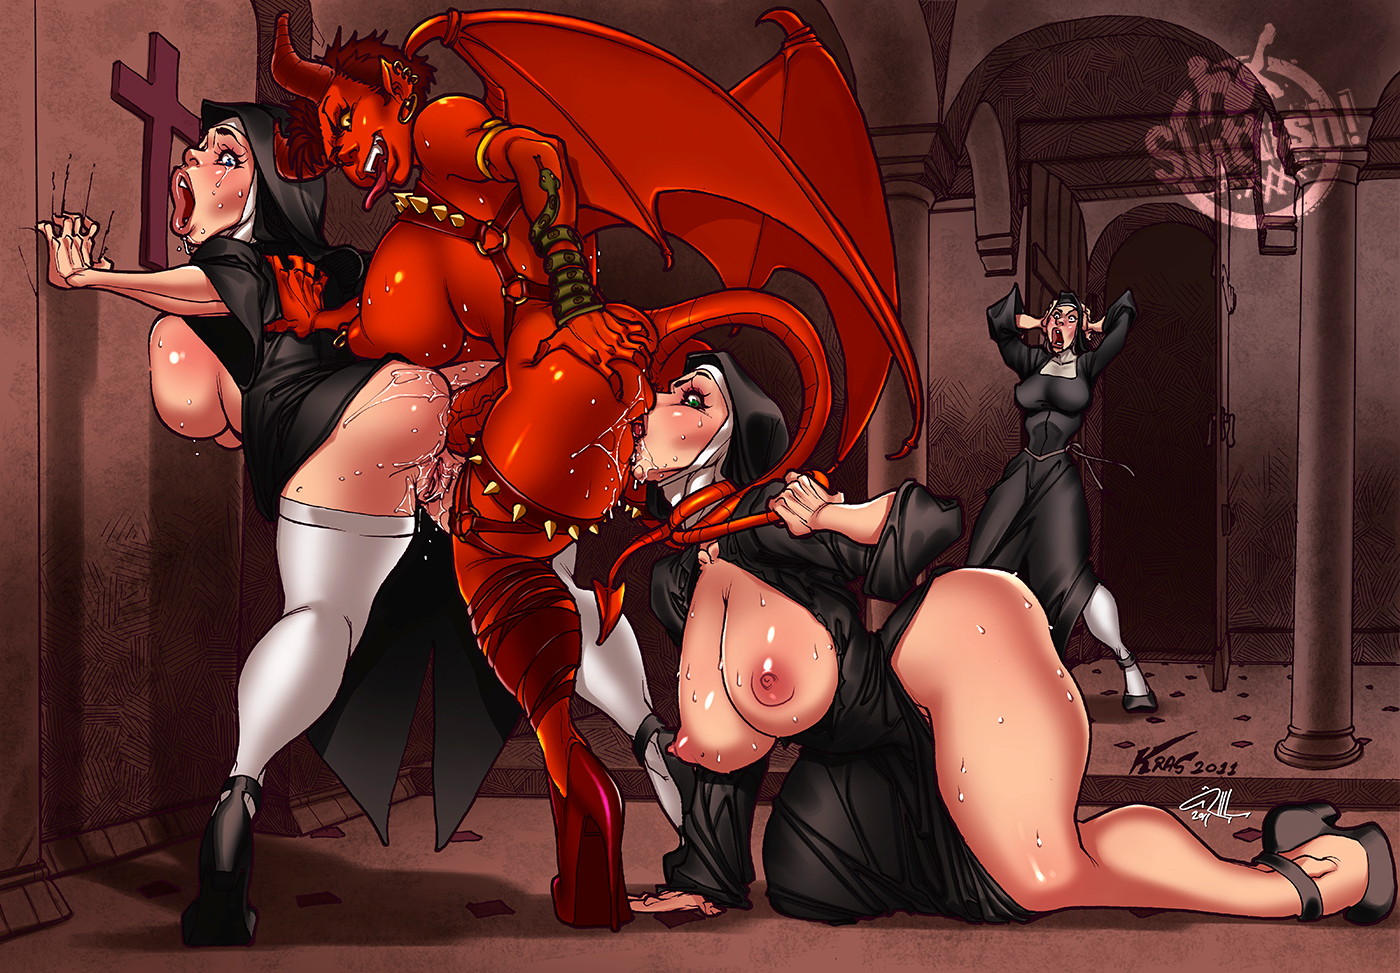 Sexy devil girl porn animated nudes gallery